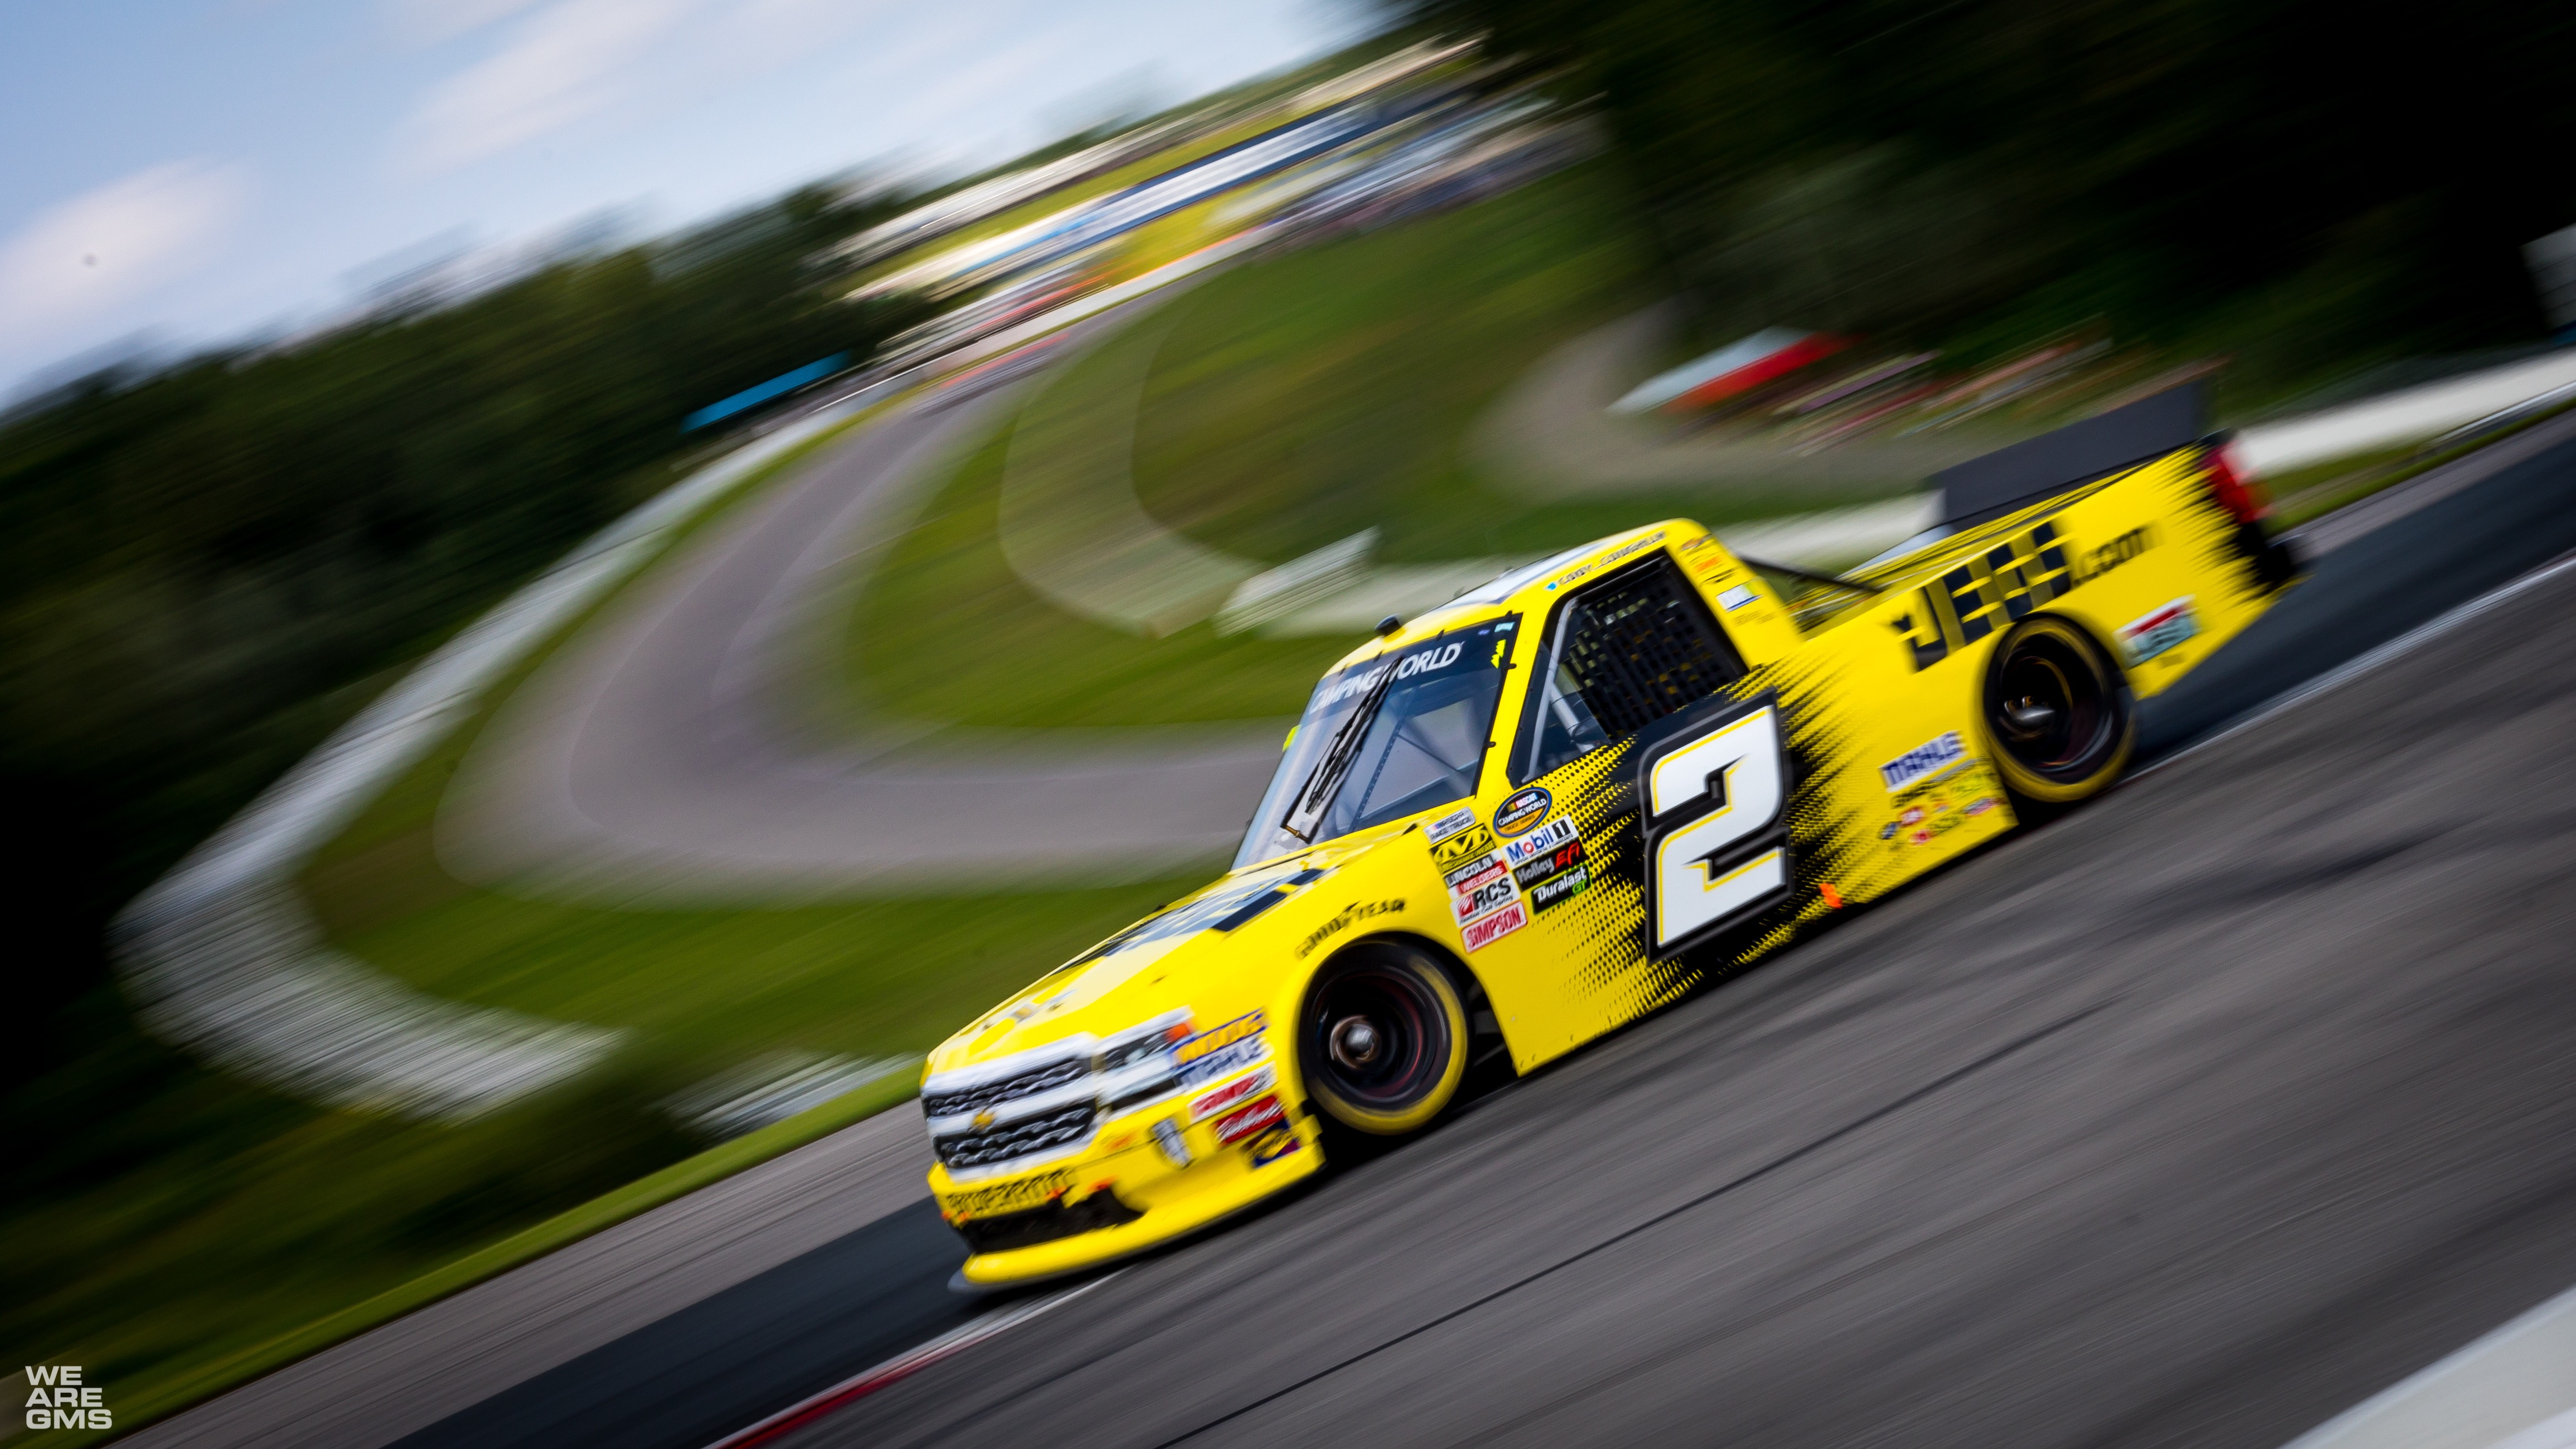 CODY COUGHLIN STATEMENT ON LEAVING GMS RACING